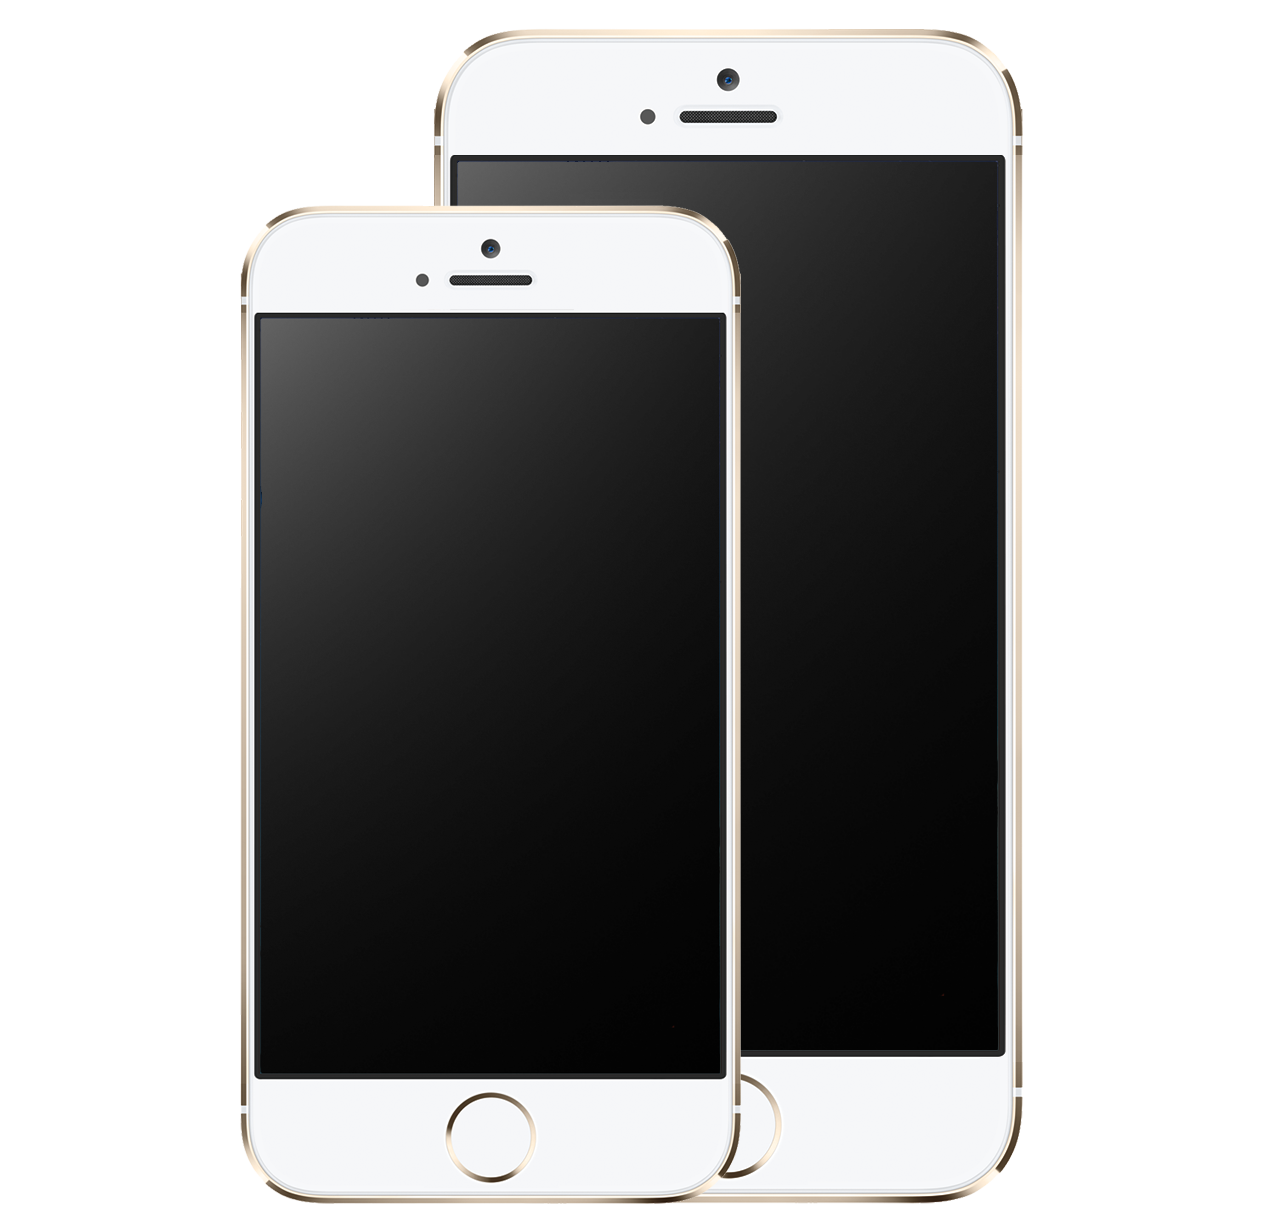 Iphone 6s plus clipart picture library iPhone 6 Plus iPhone 8 iPhone 6s Plus Telephone Apple ... picture library